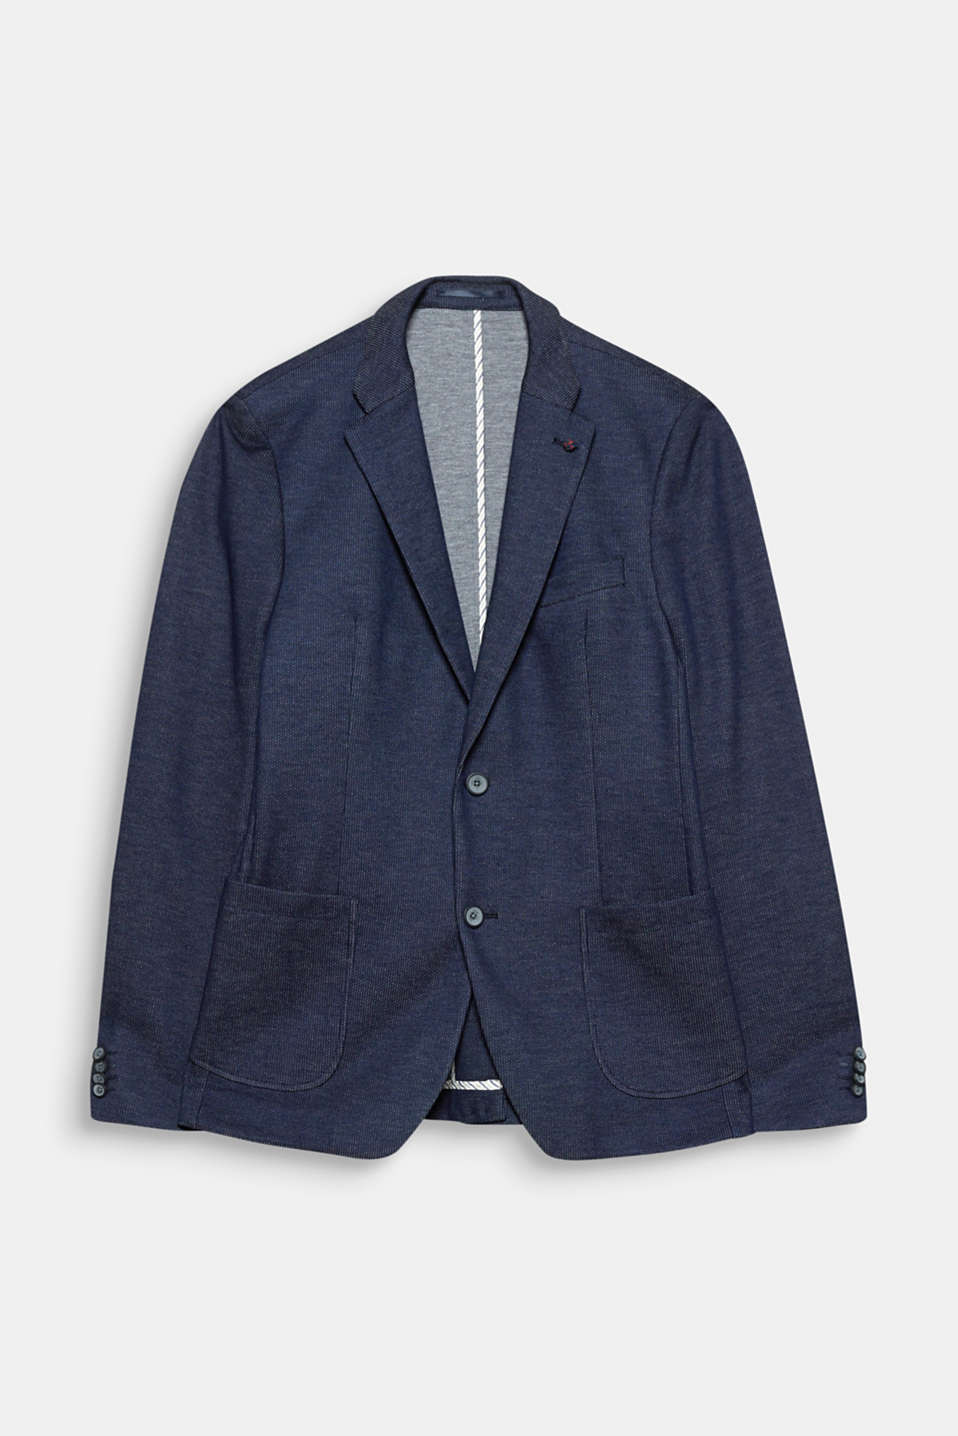 Extra slim! The textured two-tone fabric and the extra slim fit make this sporty blazer super modern.